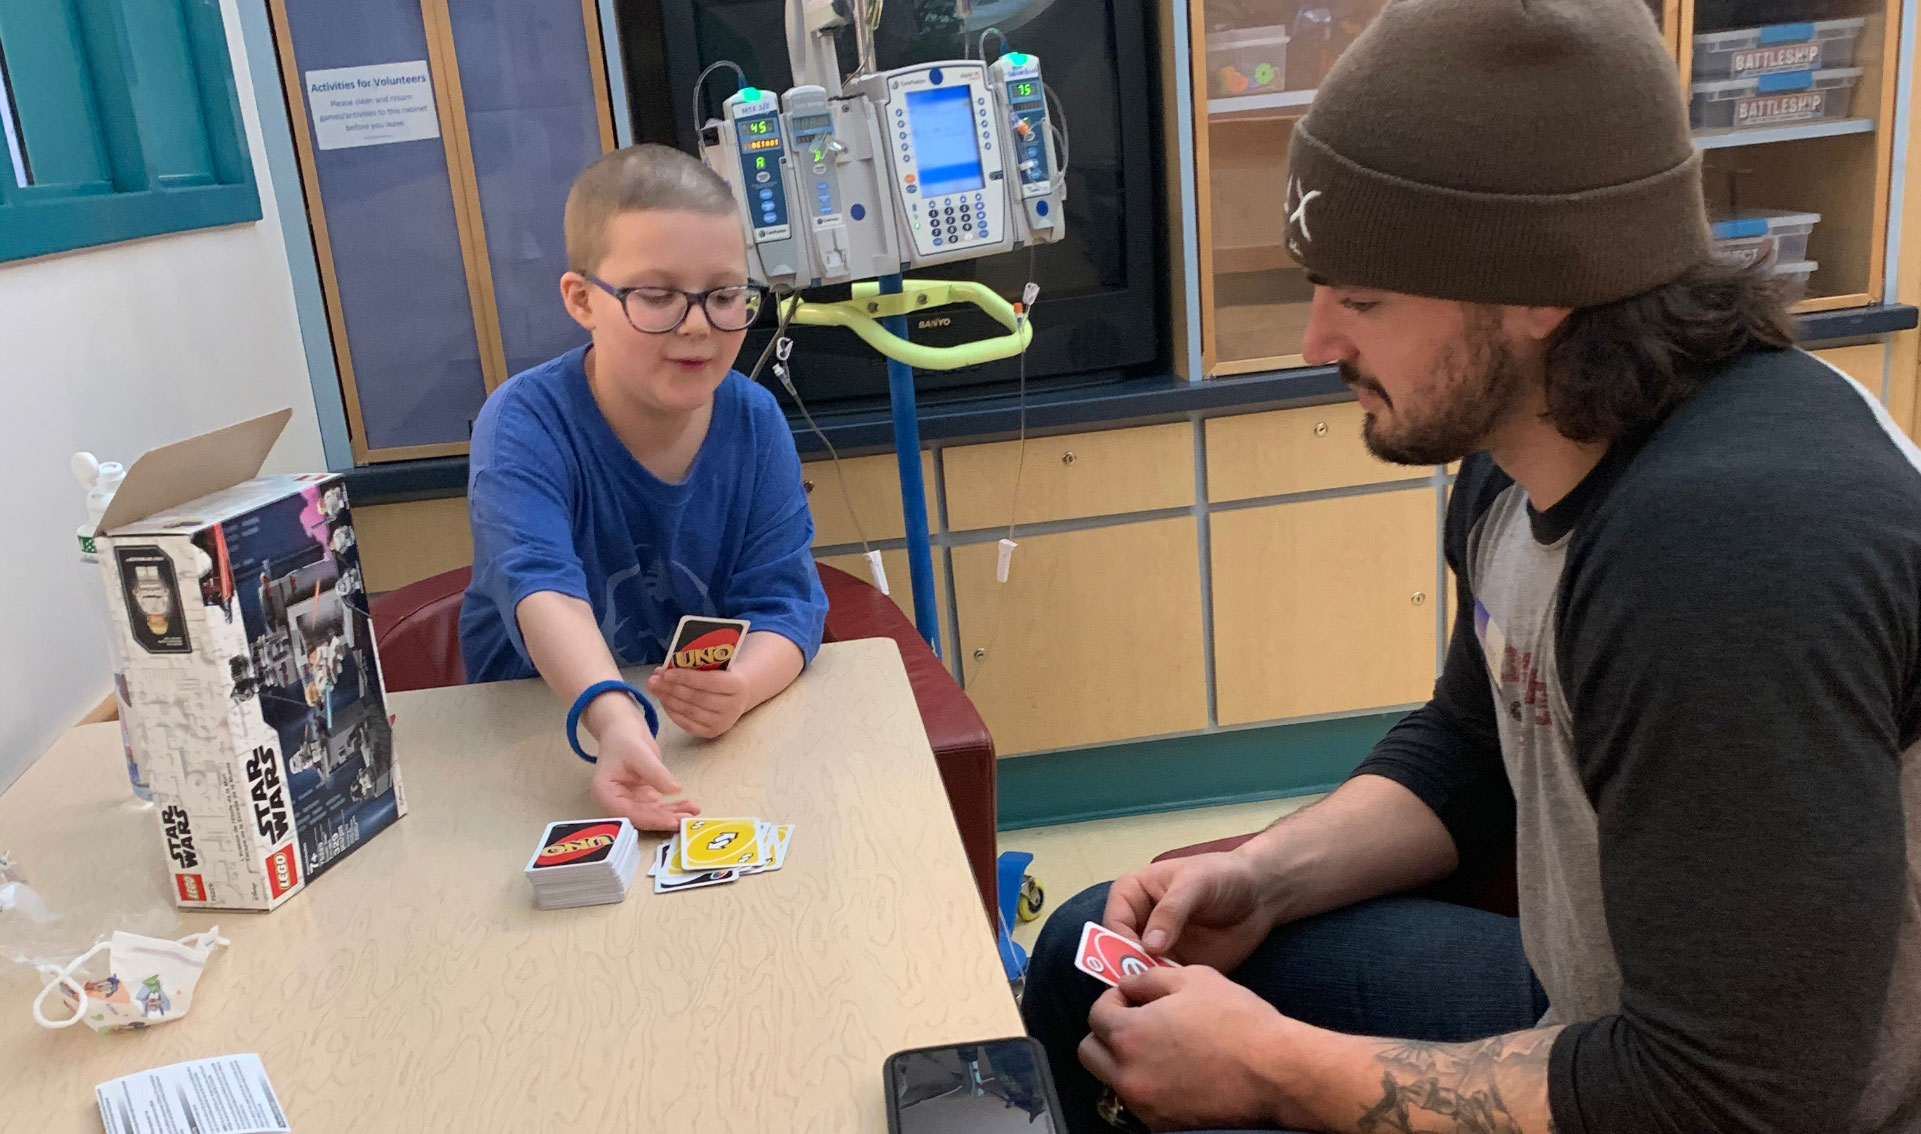 Ellie and Kash sit together at a table in the hospital and play Uno together.